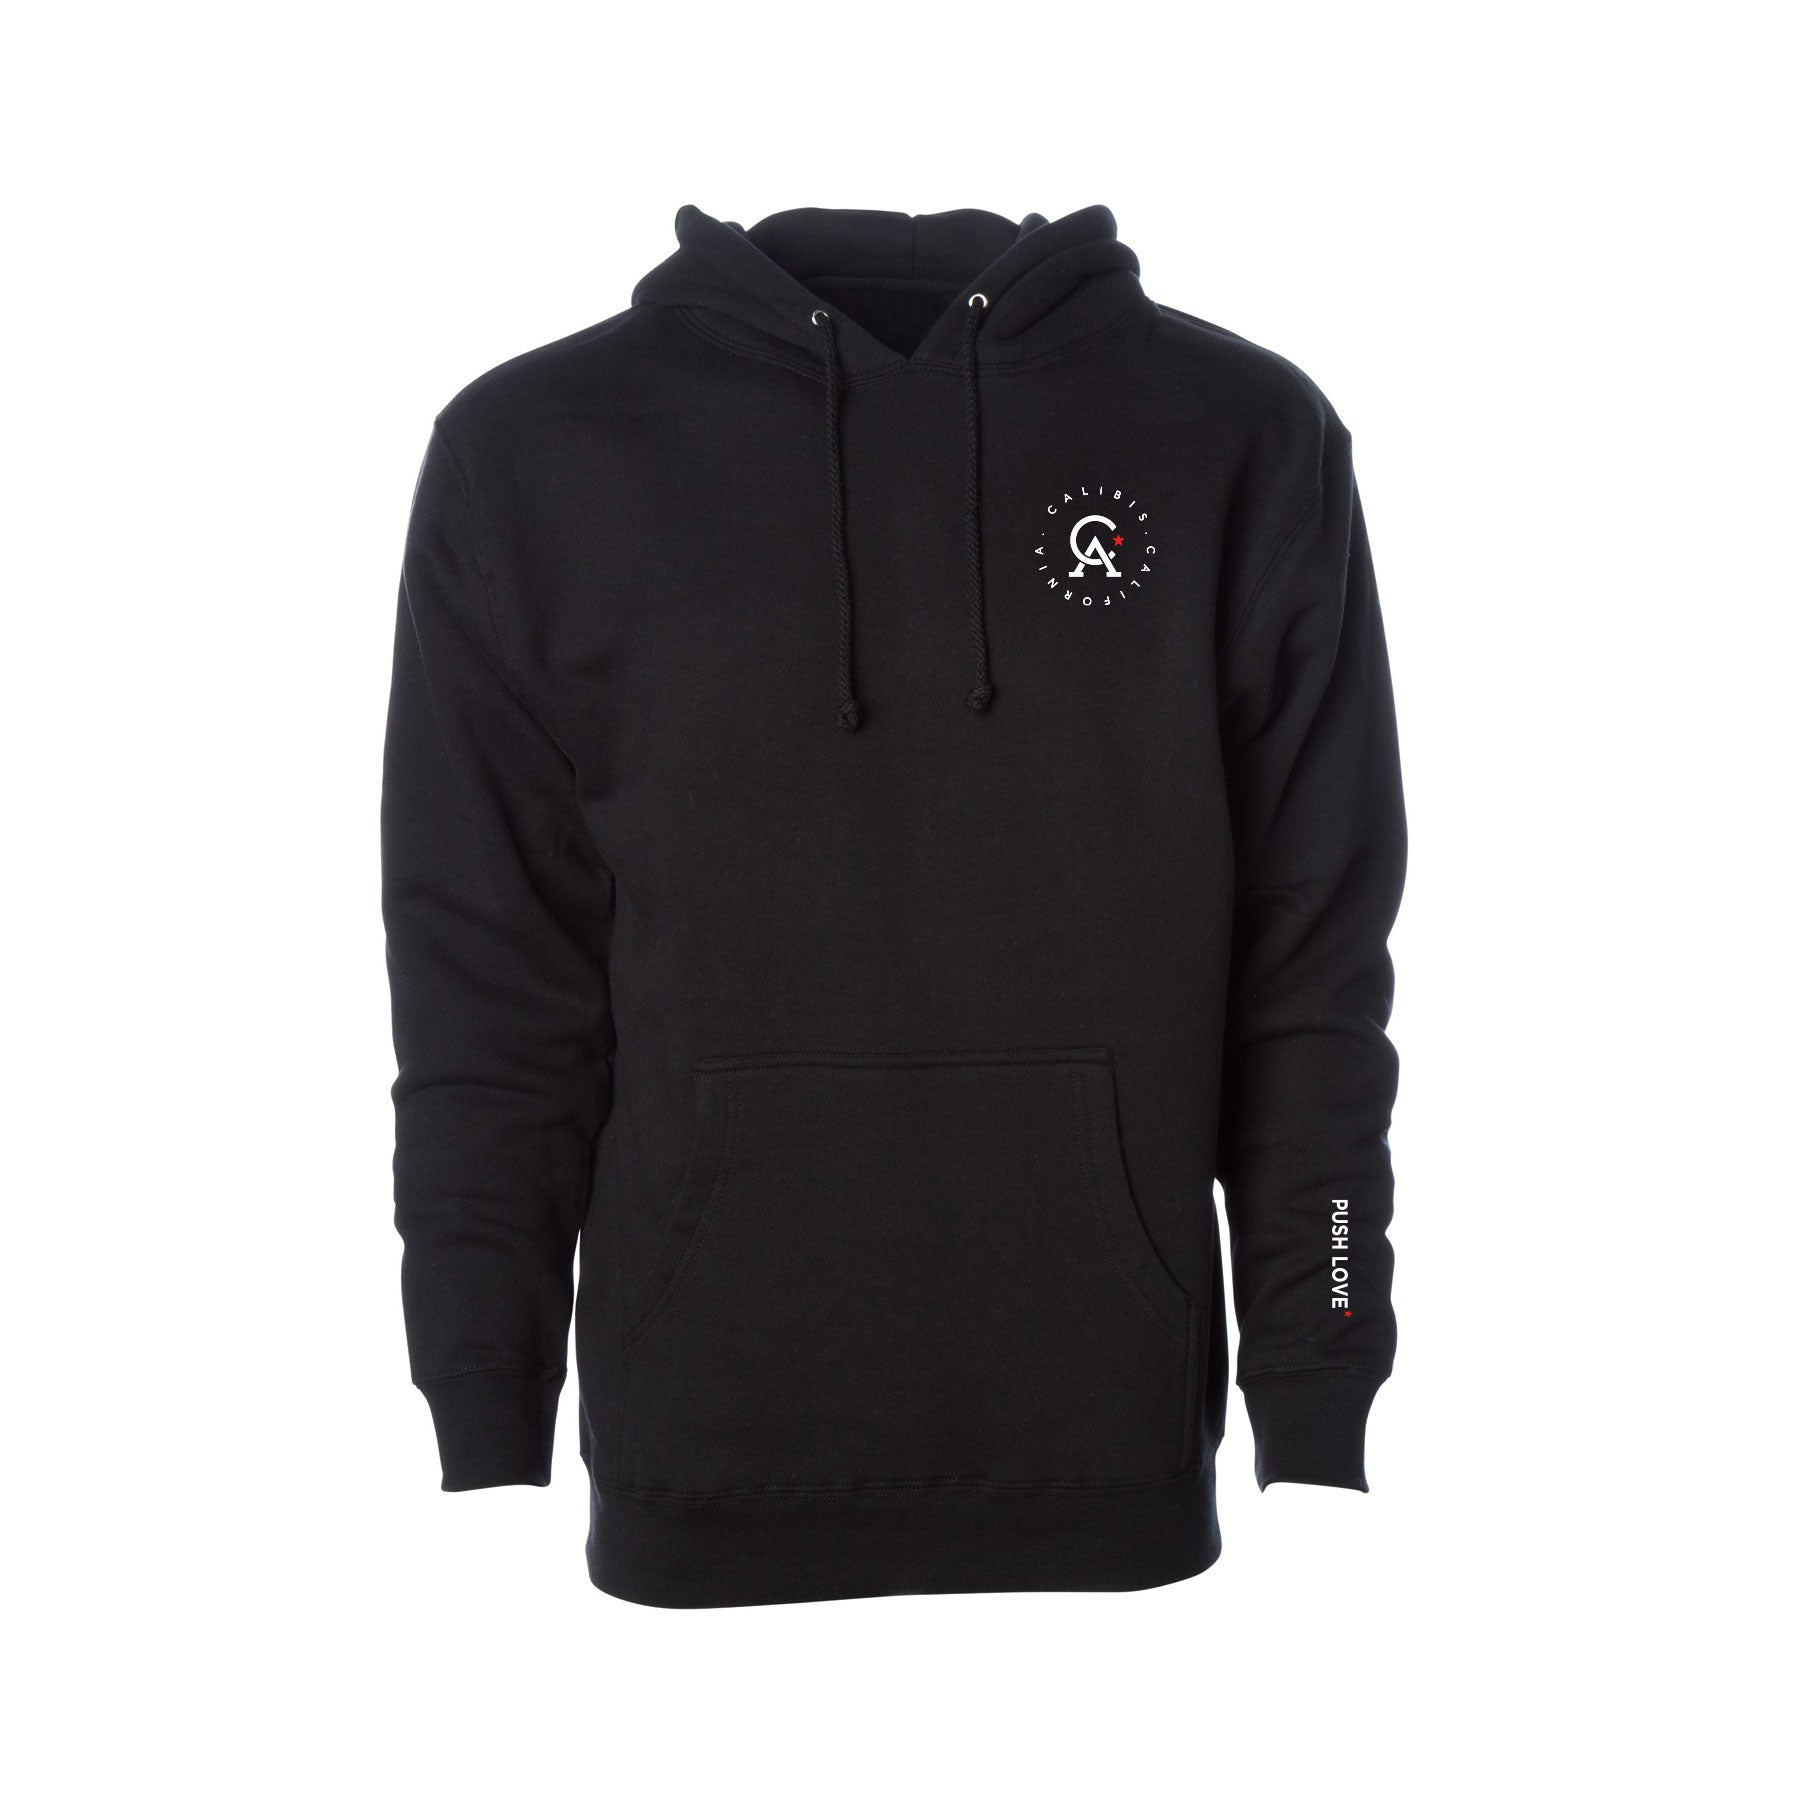 Cali Hoodie by Calibis Clothing